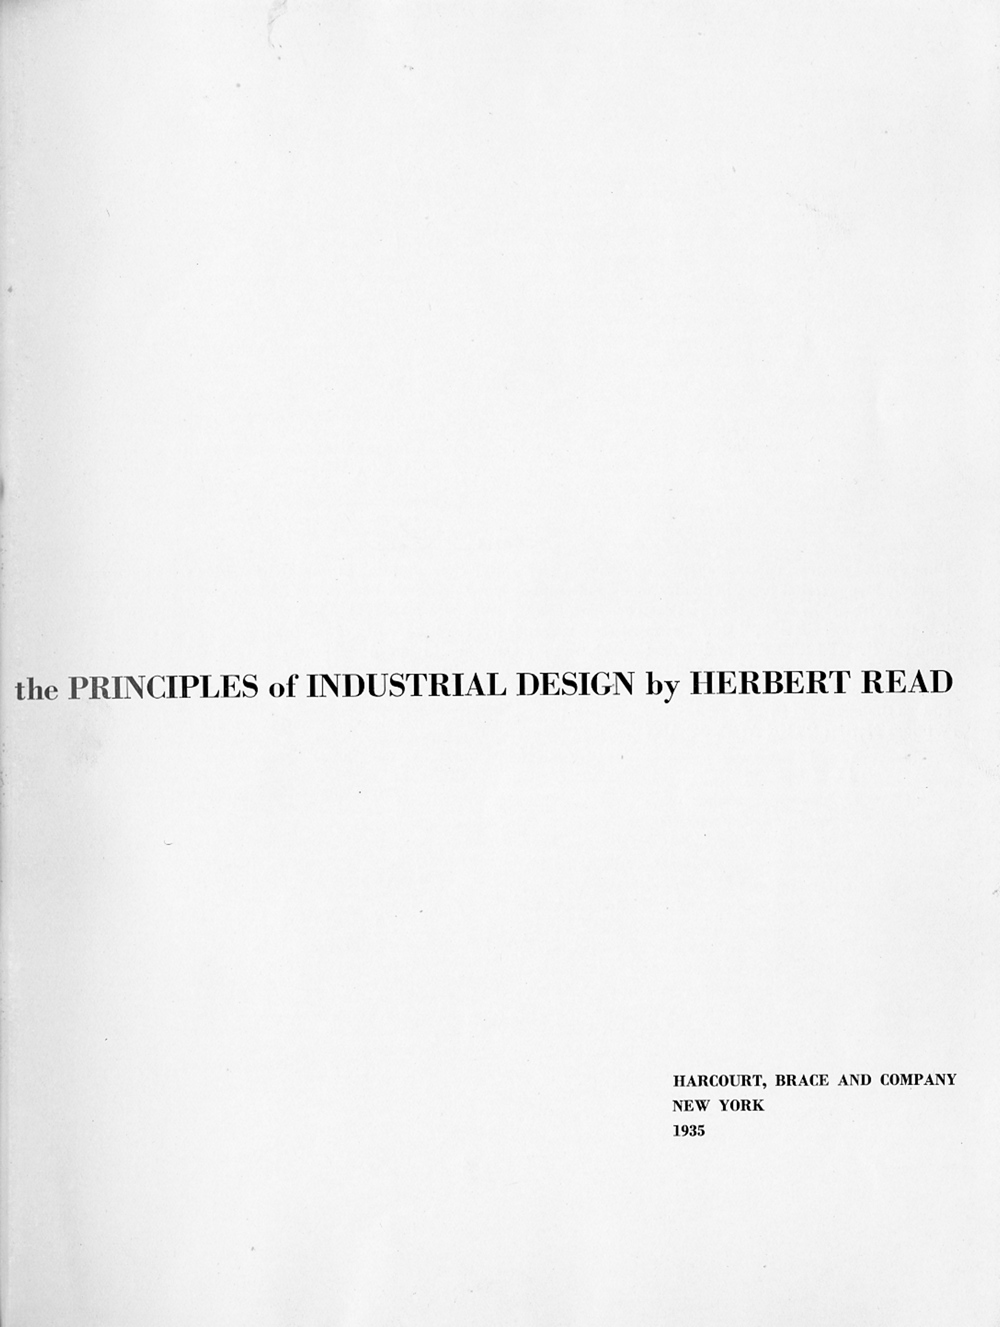 Art and Industry: The Principles of Industrial Design / Herbert Read. — New York : Harcourt, Brace and Company, 1935